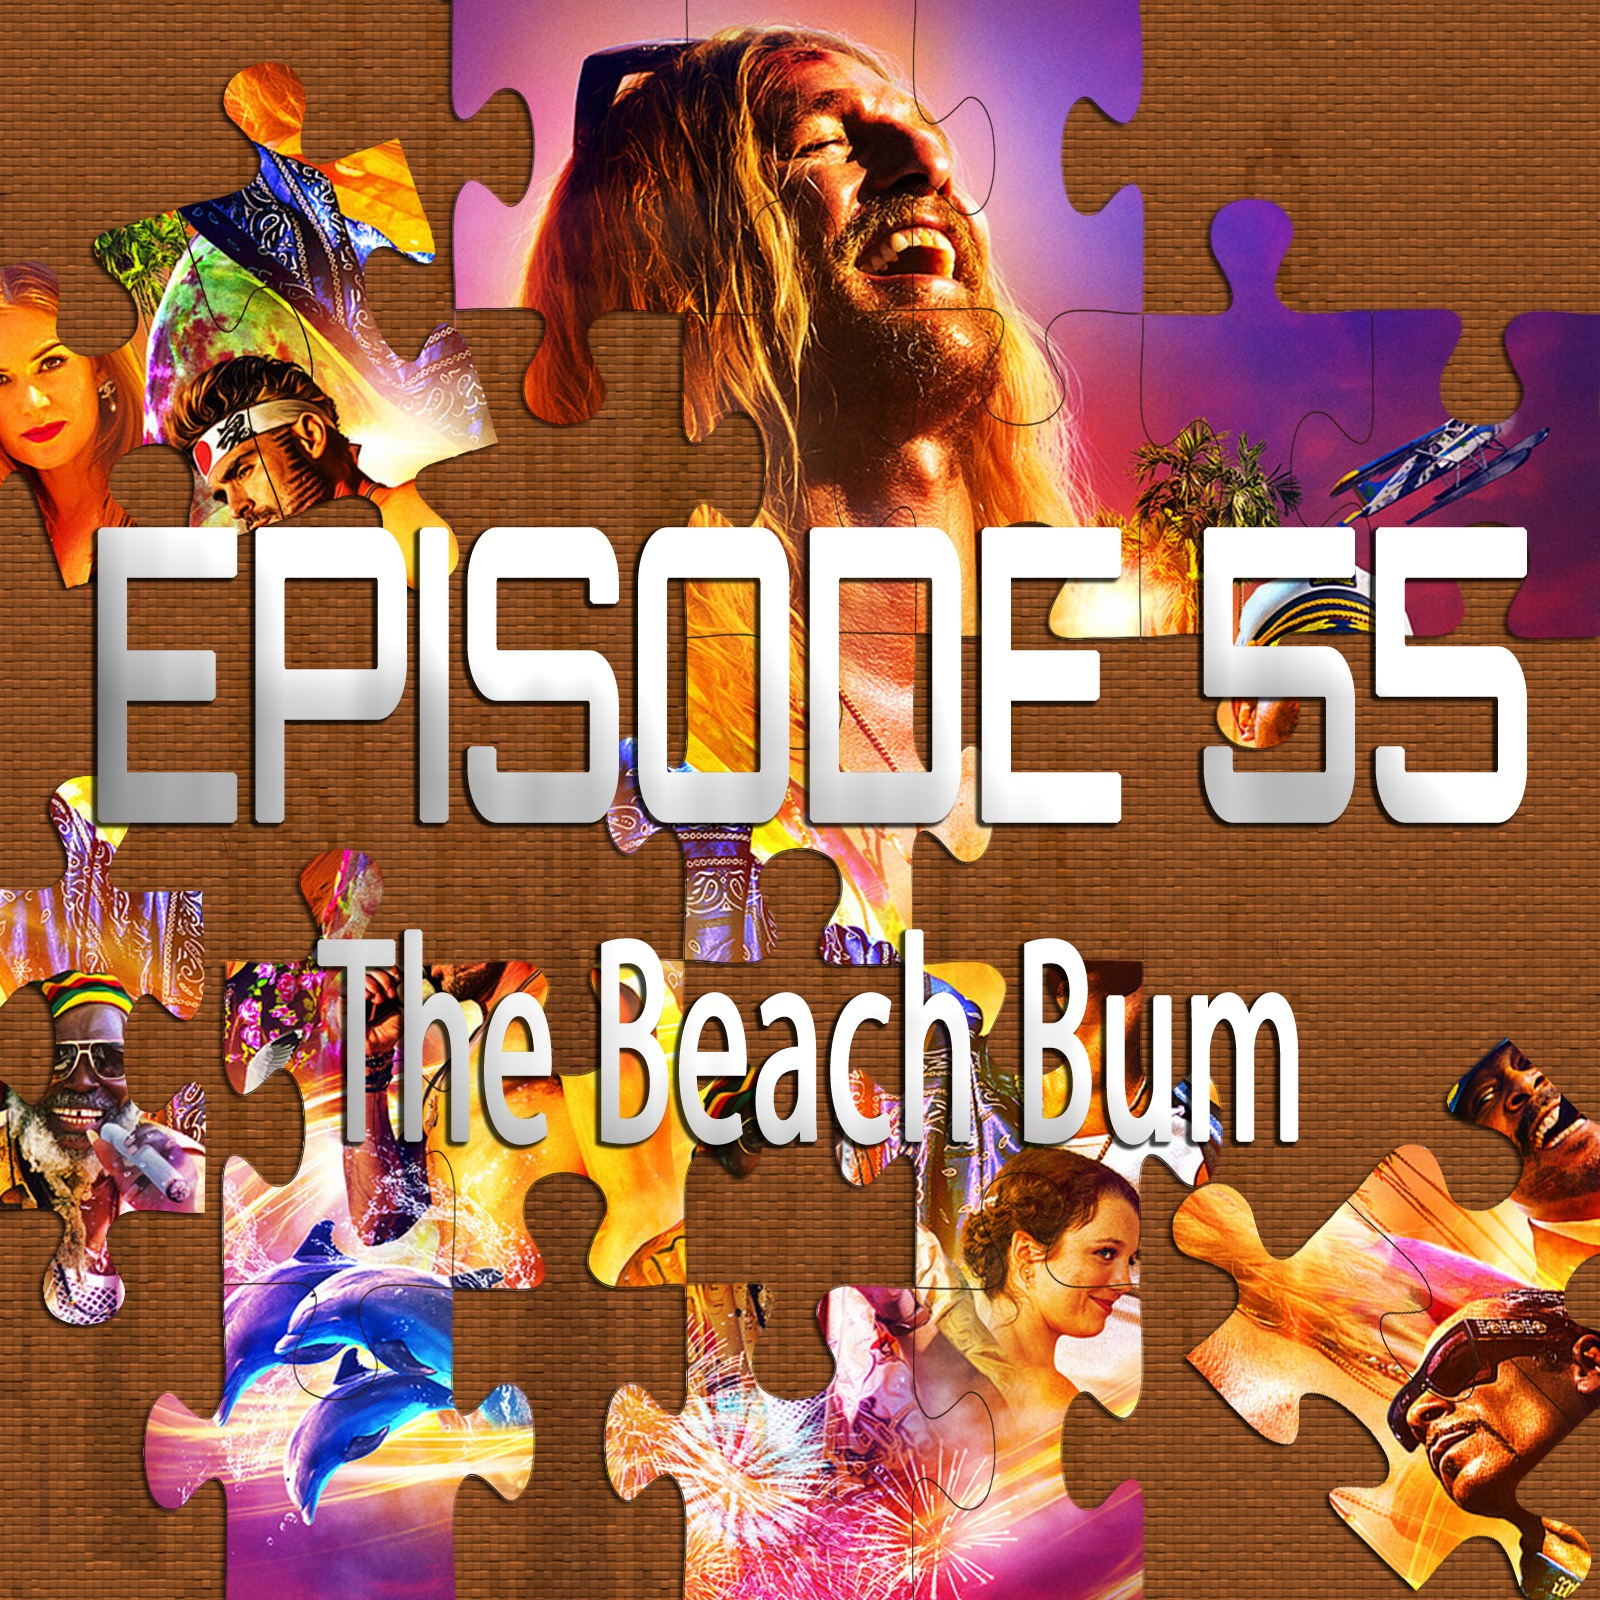 The Beach Bum (Featuring Joe Black)